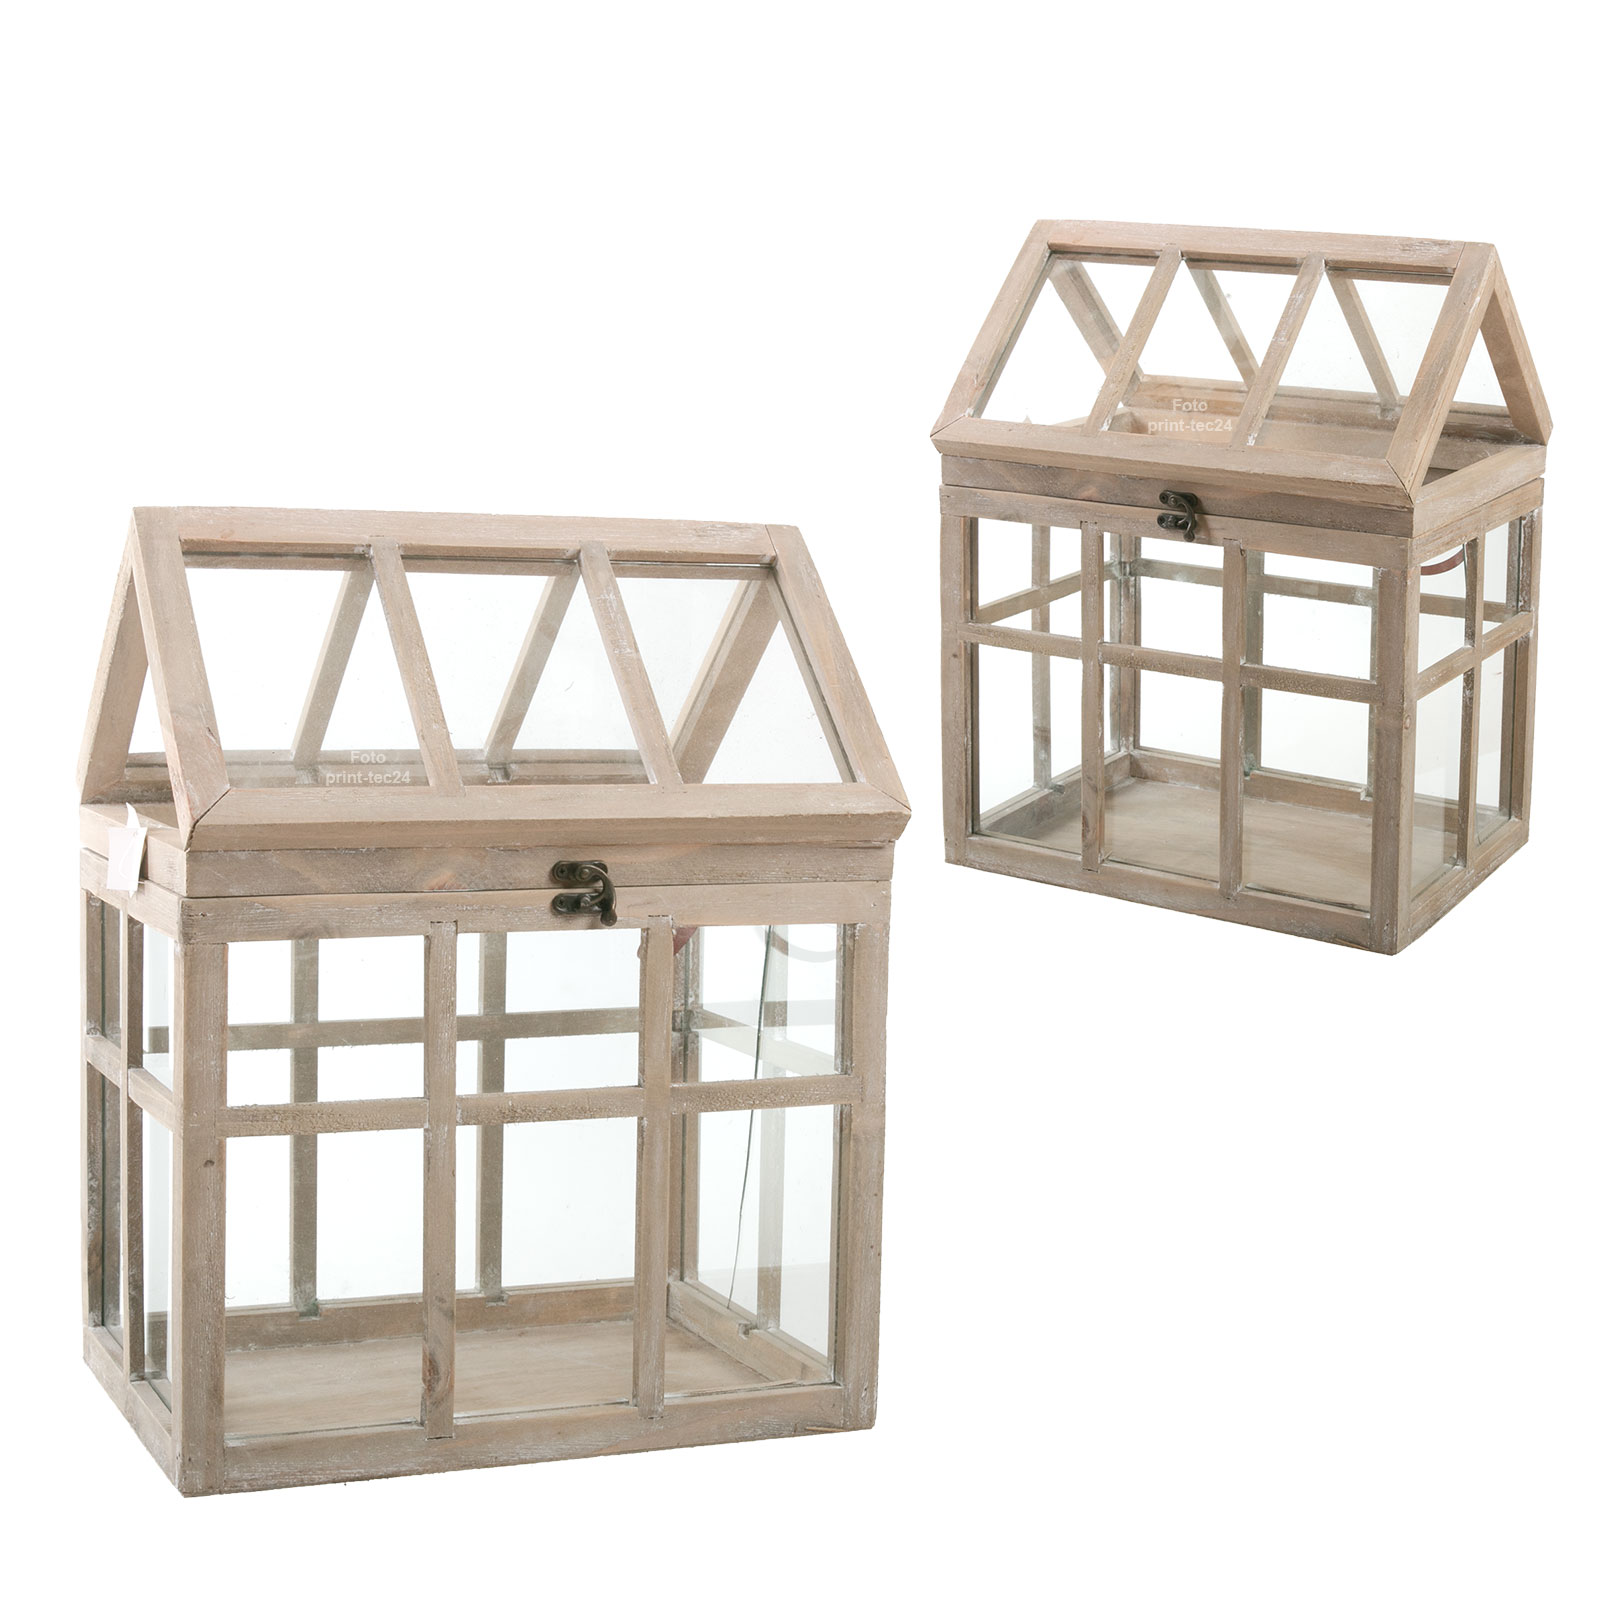 mini gew chshaus braun holz glas ziehkasten windlicht laterne kerzenhalter ebay. Black Bedroom Furniture Sets. Home Design Ideas